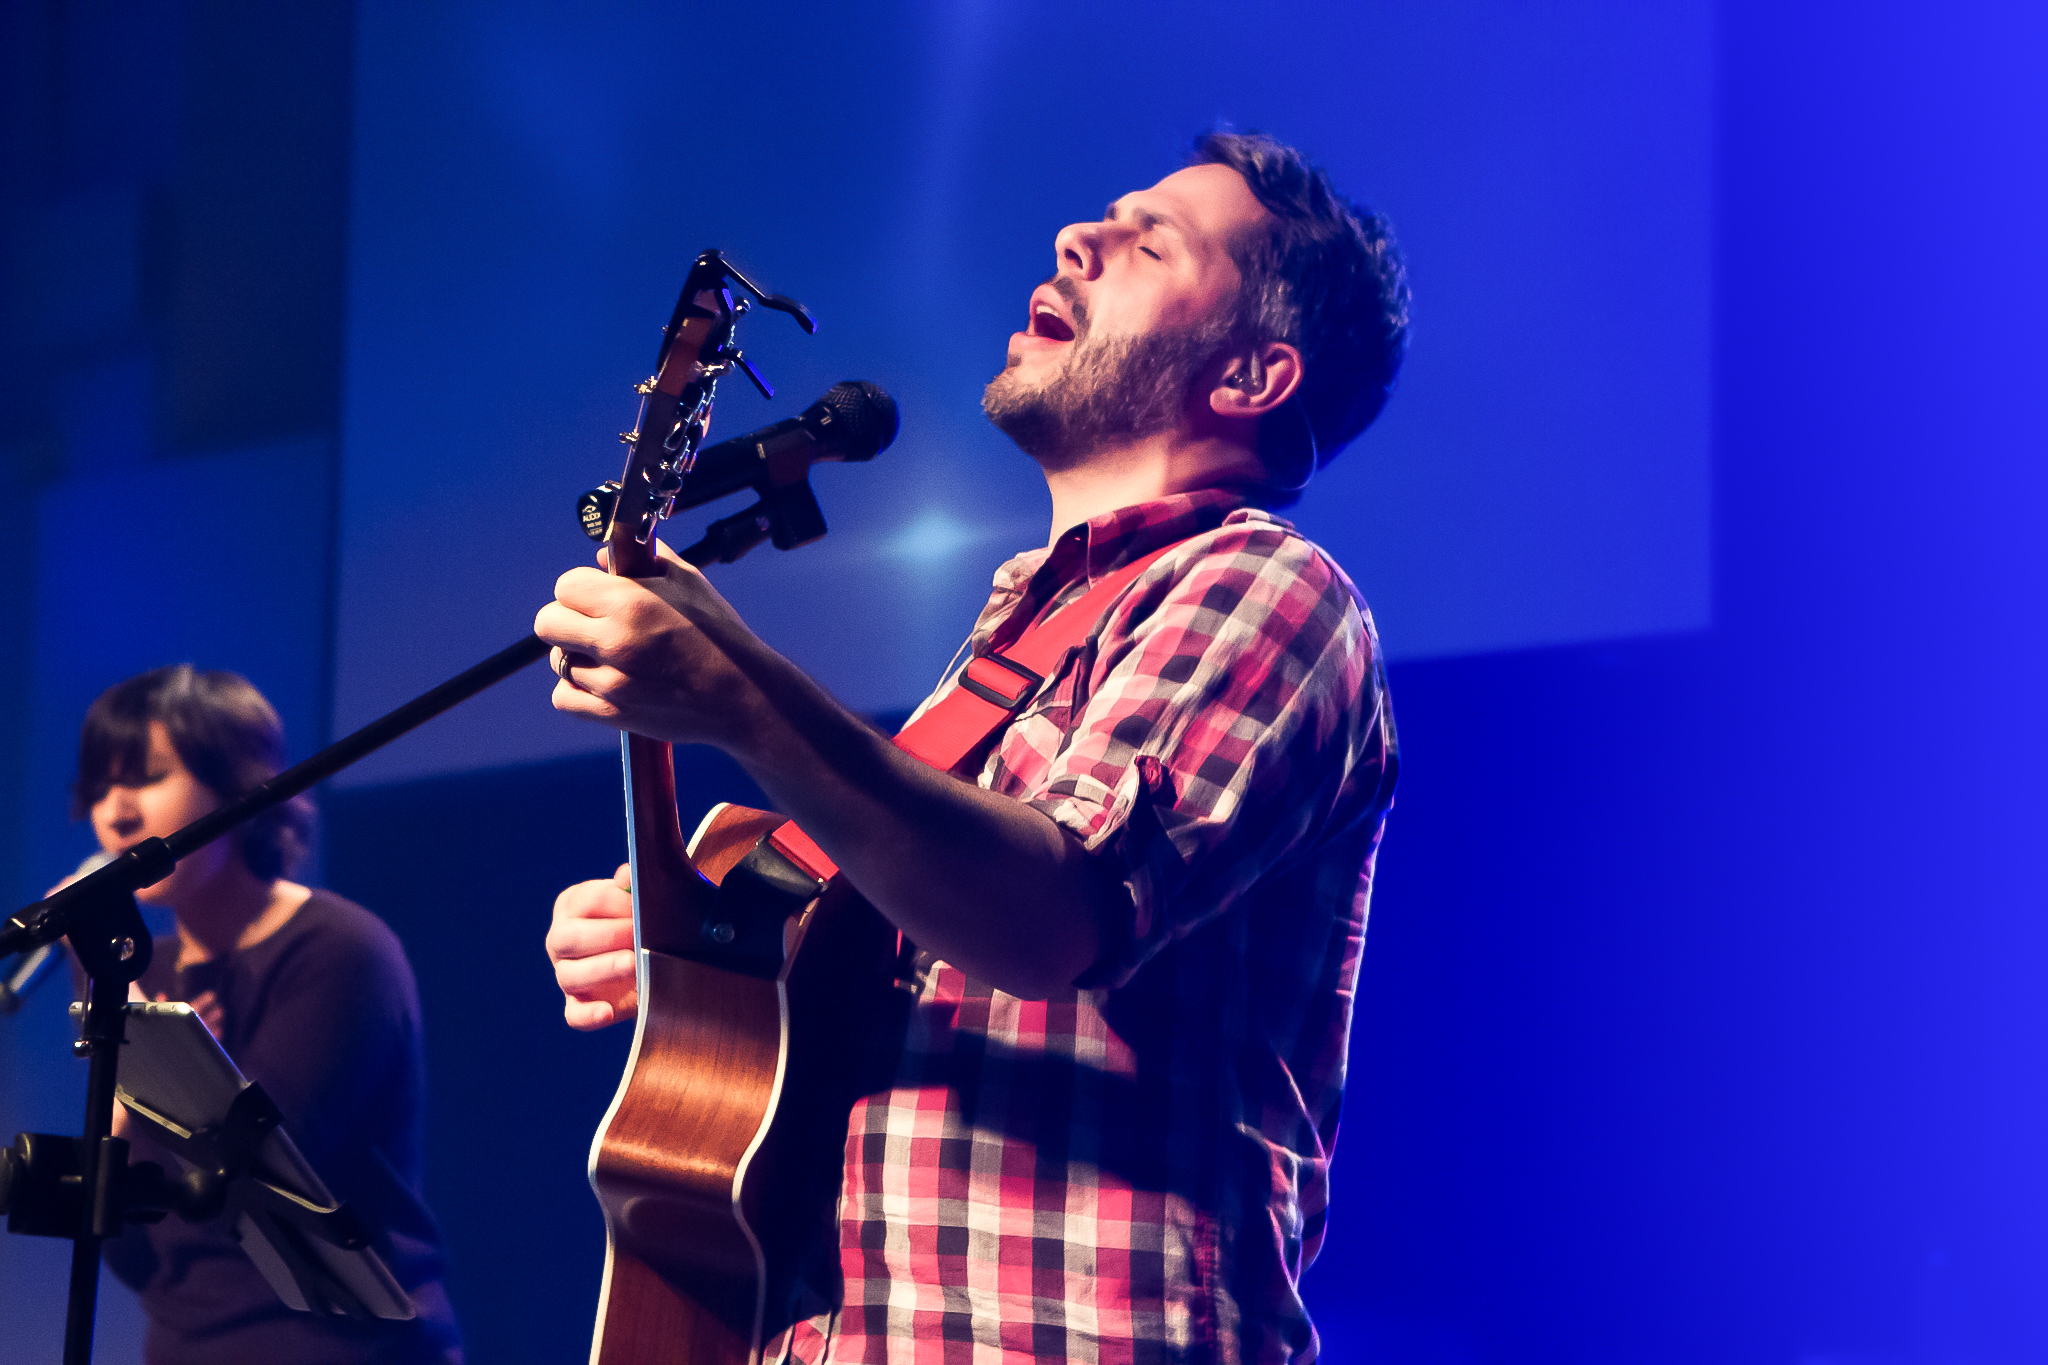 """ABOUT CHARL:   Charl has been the Pastor of Worship and Media Arts at In Focus Church for the past five years and is currently in the process of relocating back to South Africa. He is married to Elize Folscher and they have a six-month baby boy named Benjamin. Charl says, """"I love Jesus and his church and I believe that the church in its local context is the hope of the world."""""""